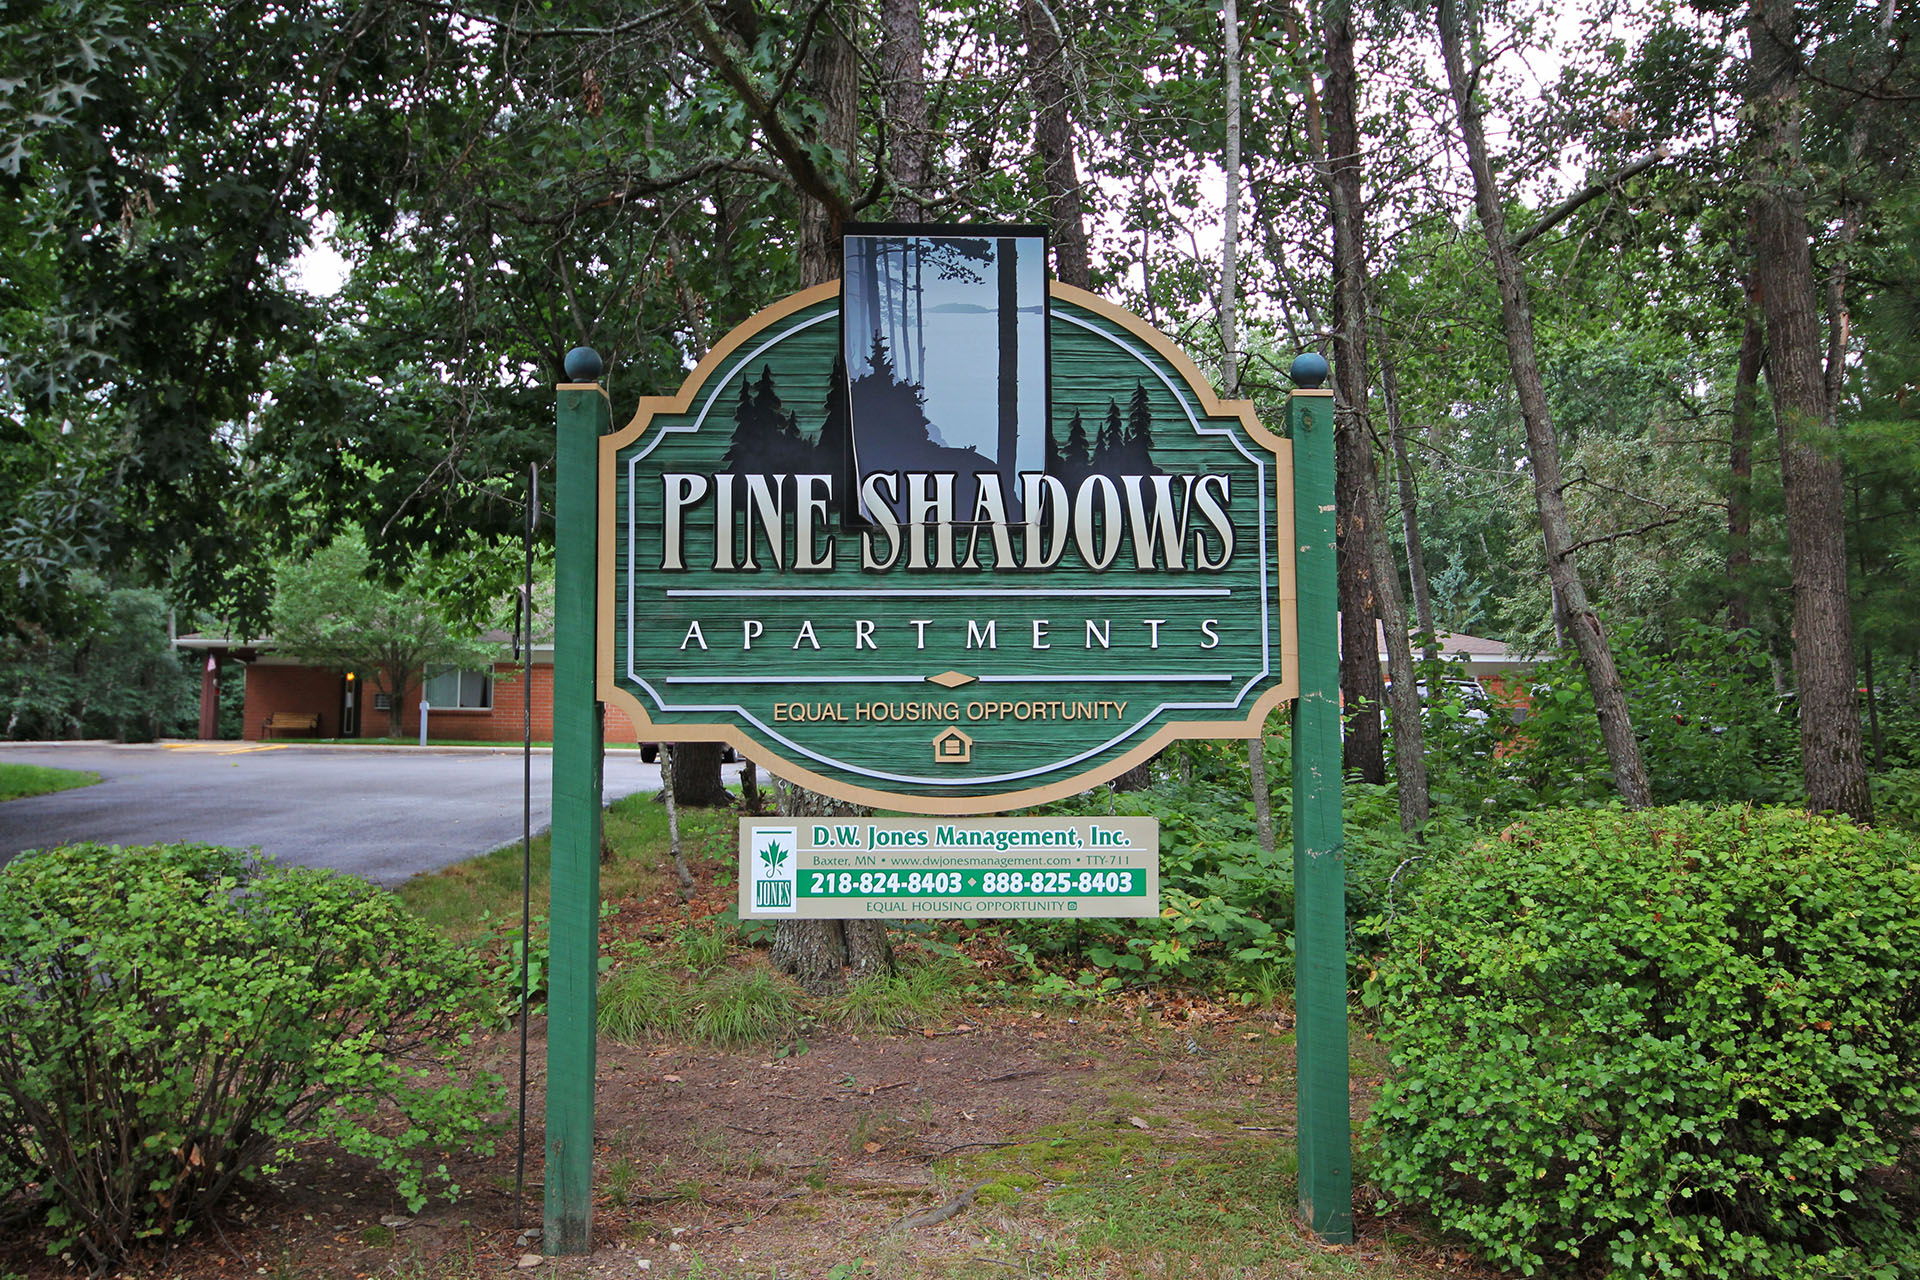 Image of Pine Shadows Apartments in Nisswa, Minnesota